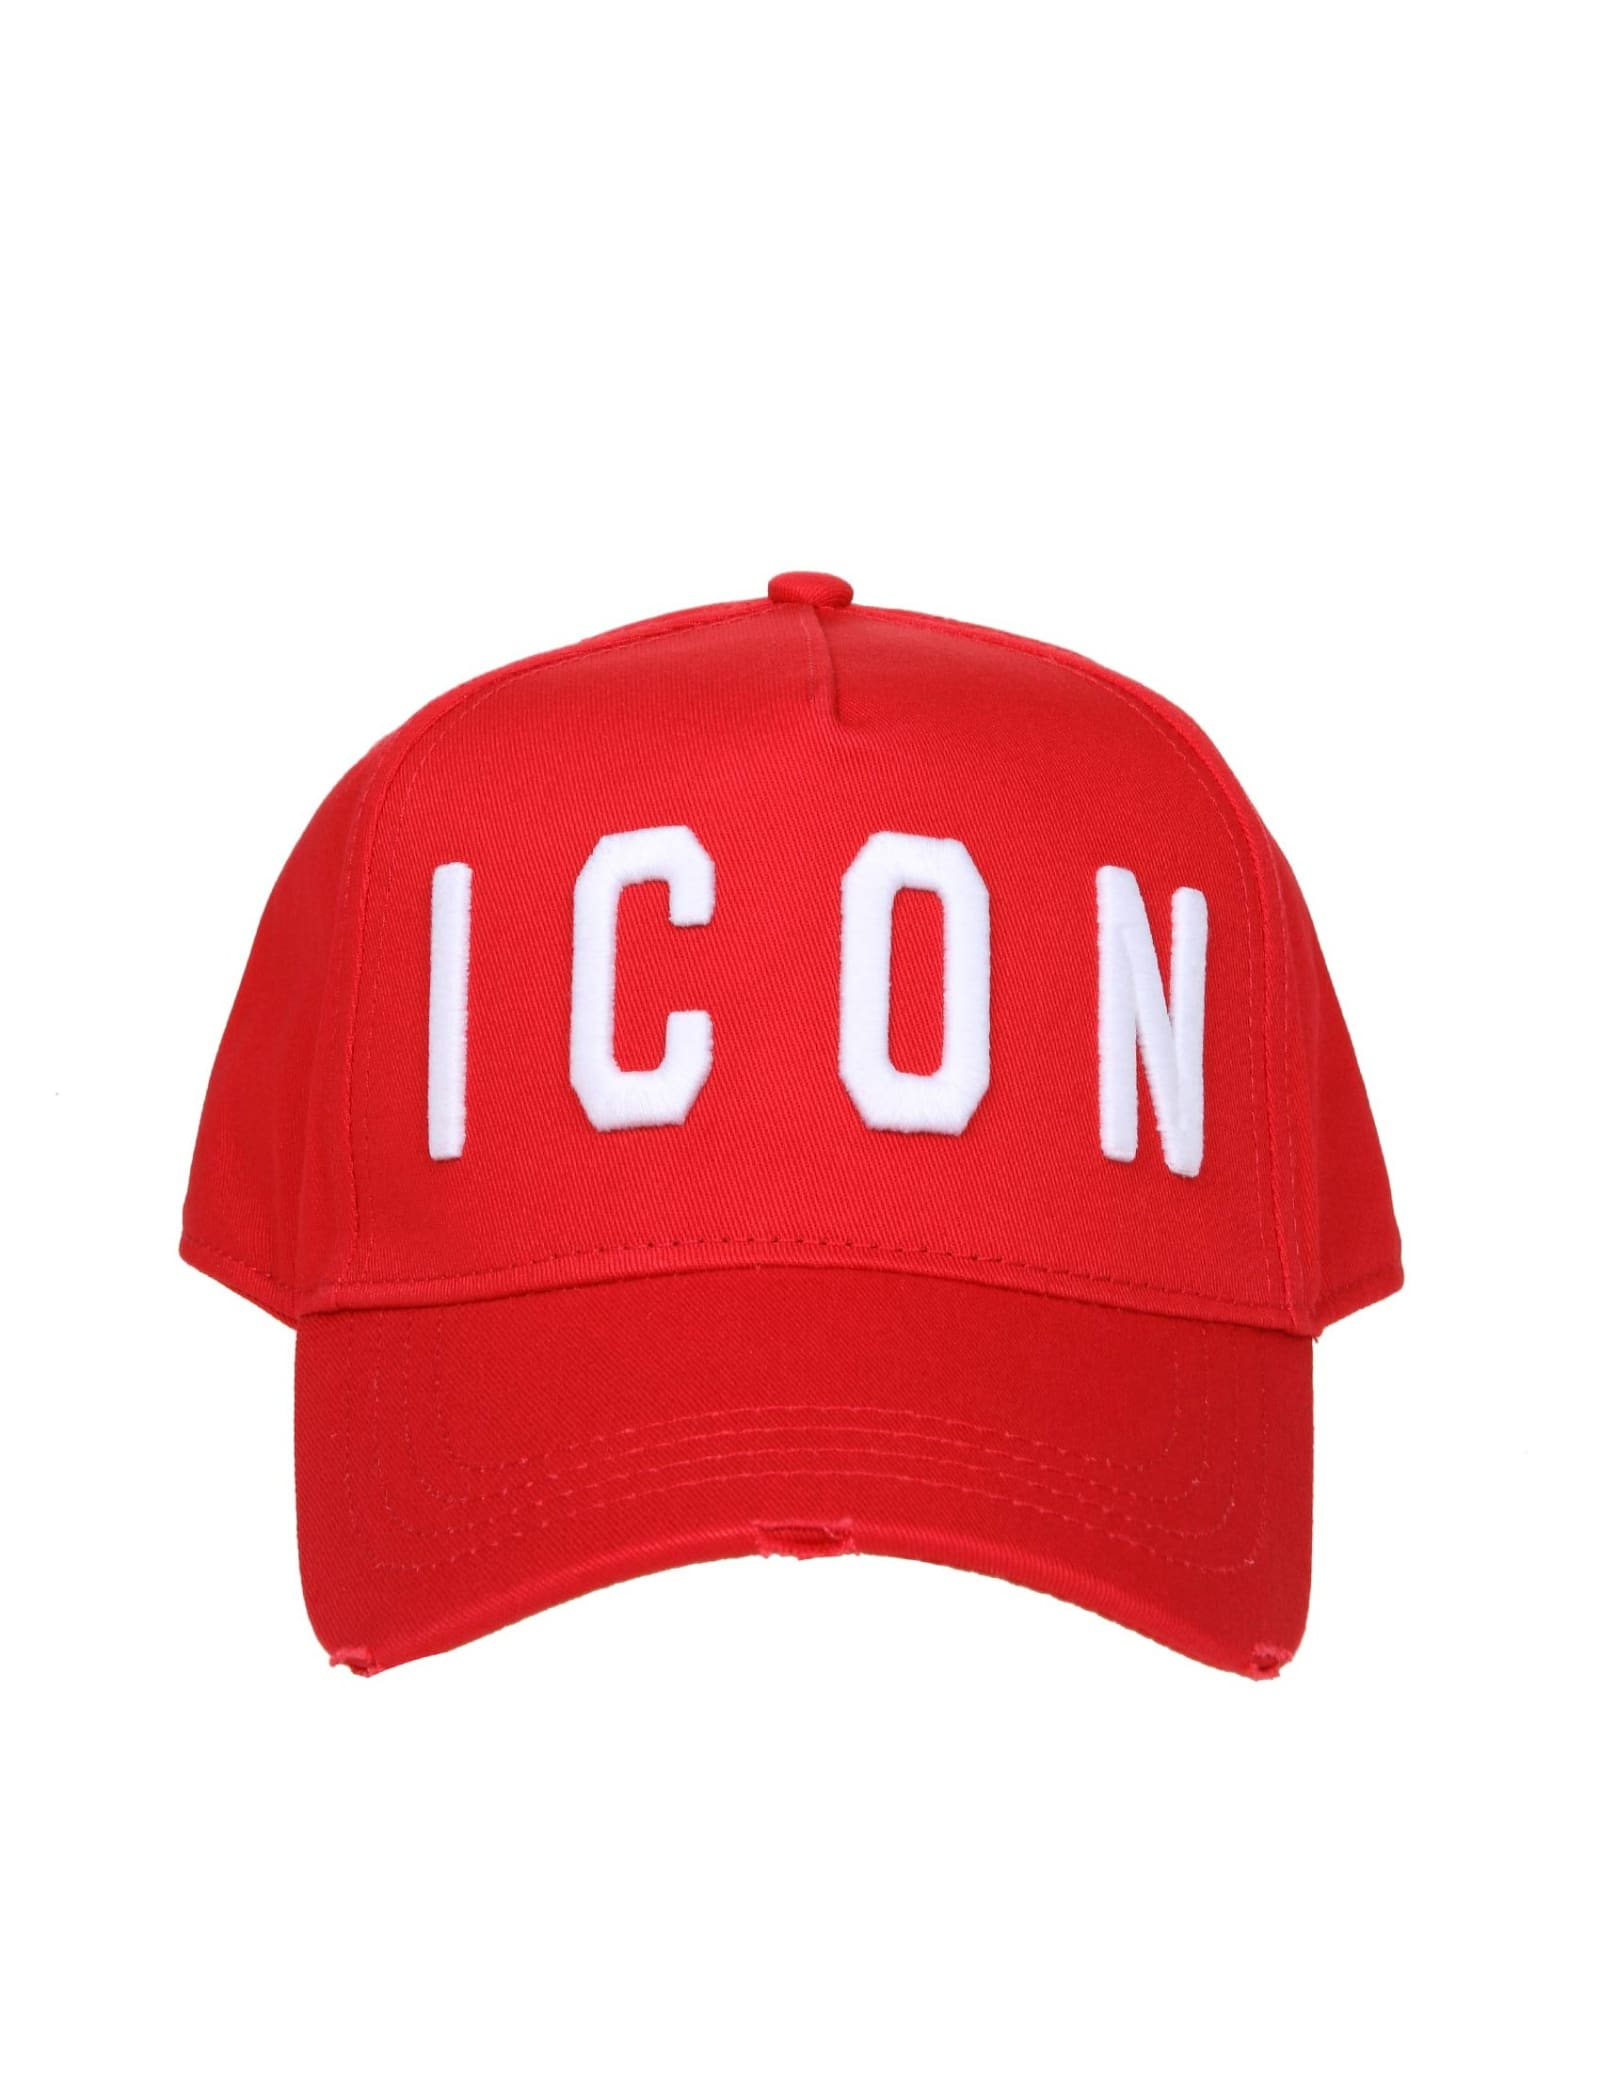 Dsquared2 BASEBALL HAT IN RED FABRIC